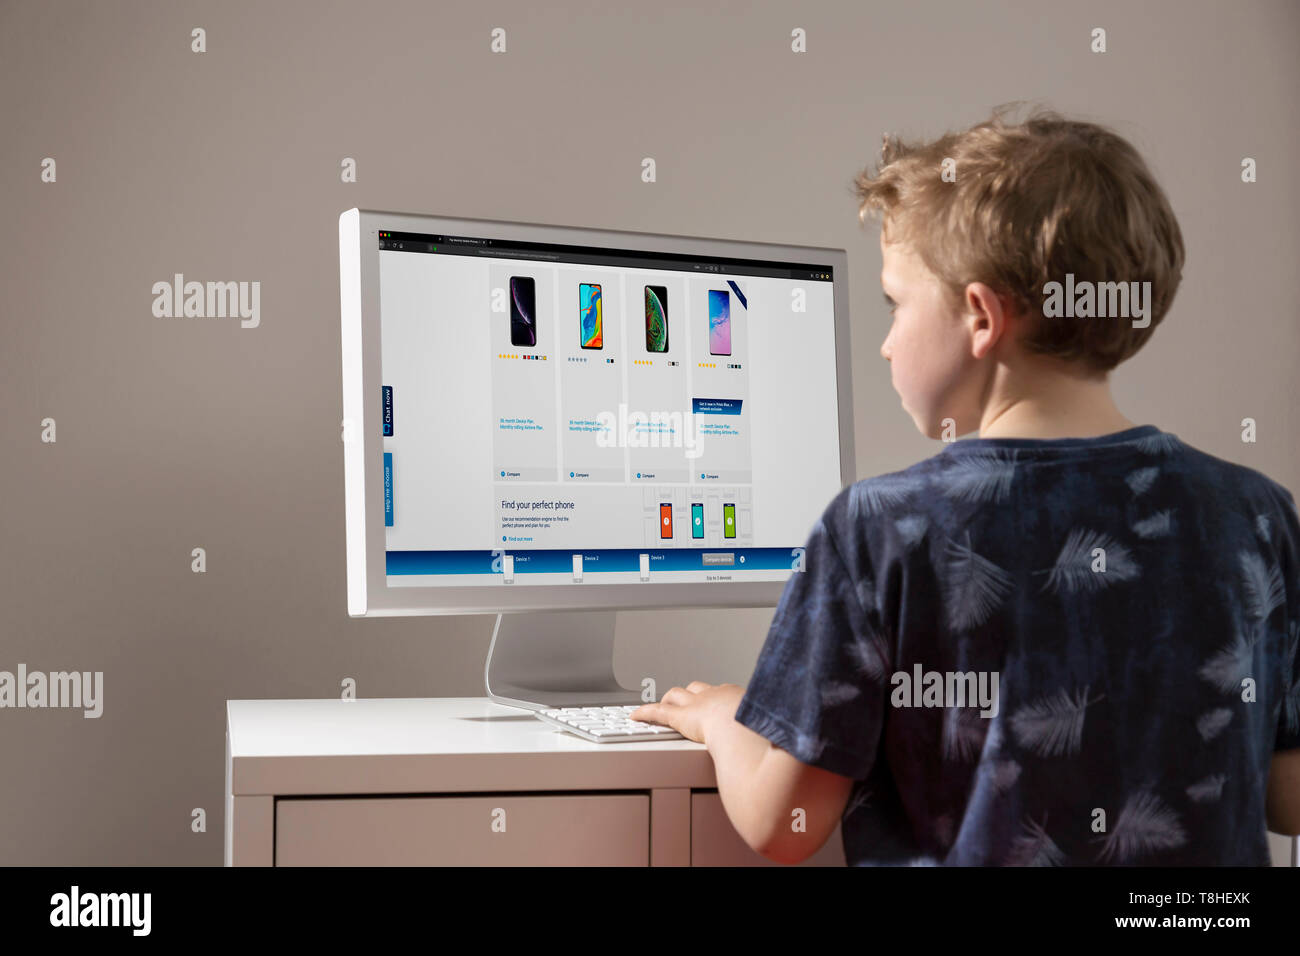 Boy looking at offers for mobile phones in the Internet - Stock Image